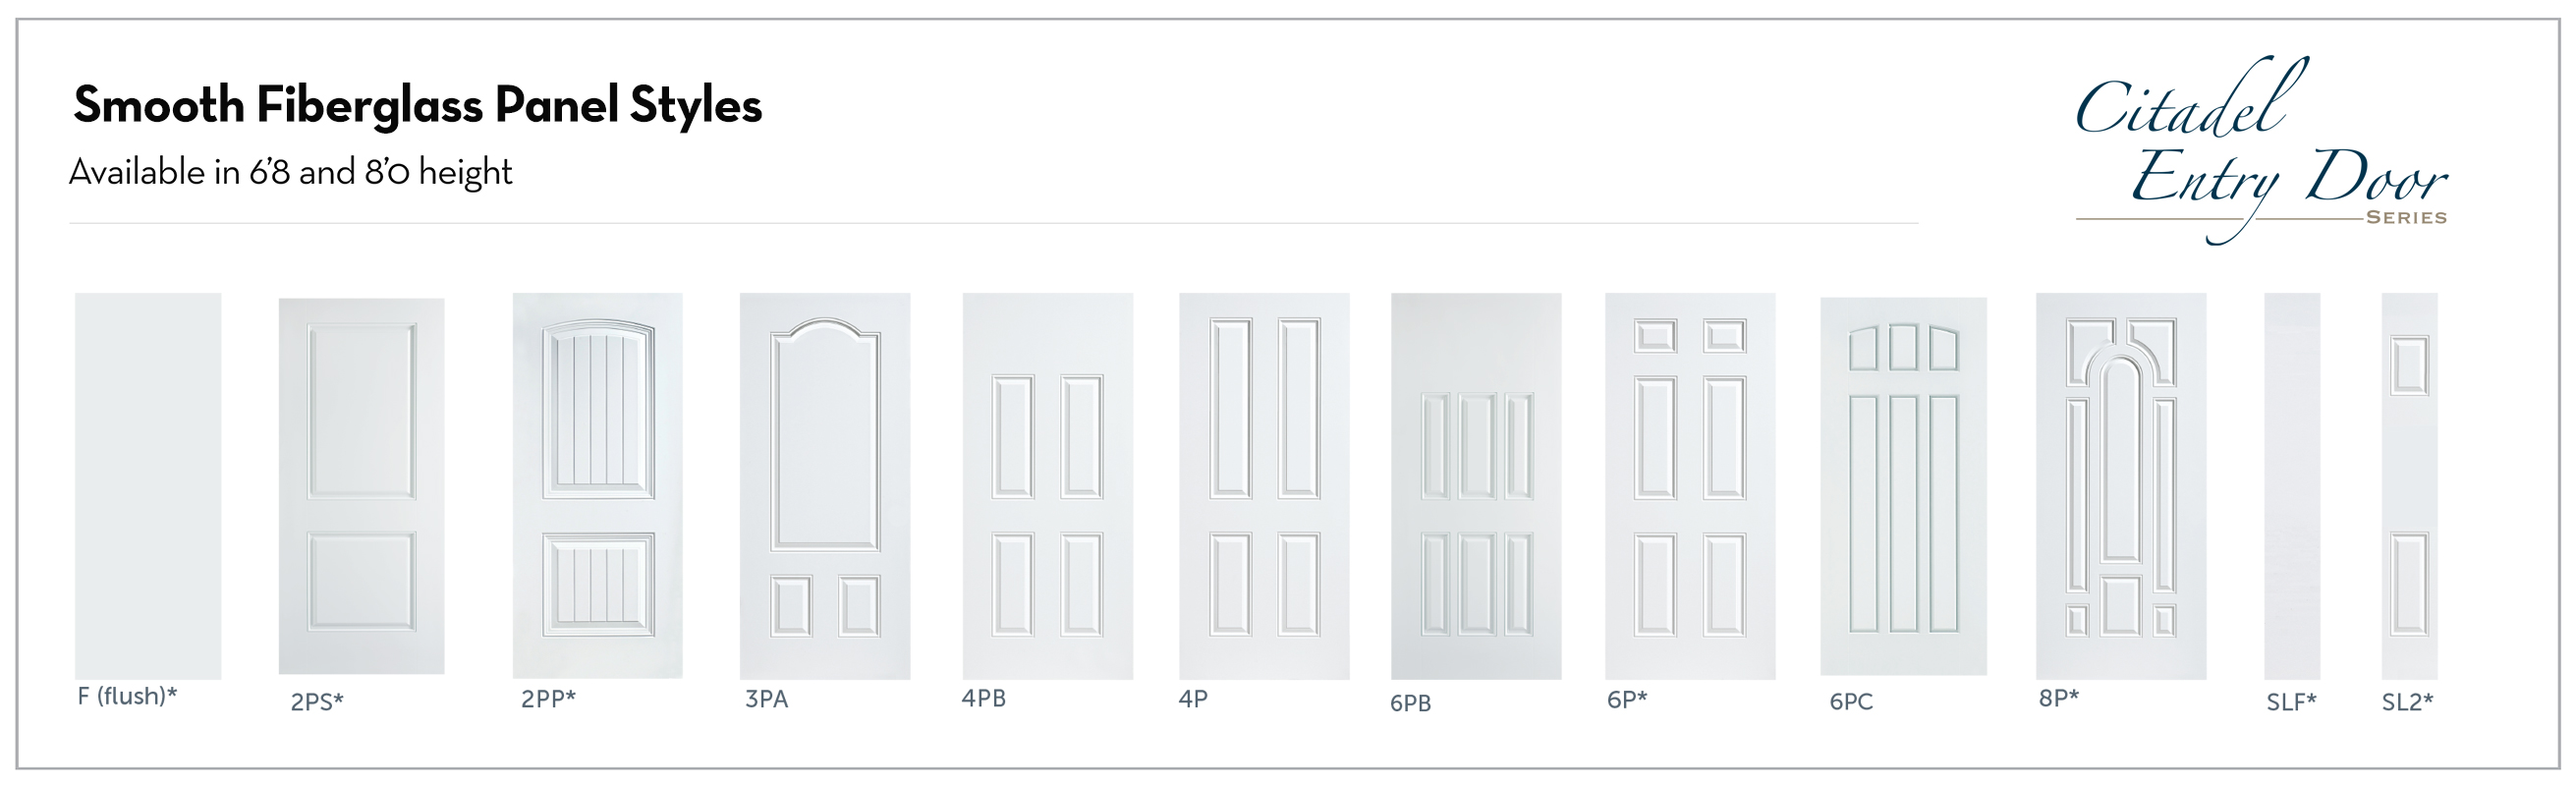 Entry Door -Fiberglass Panels